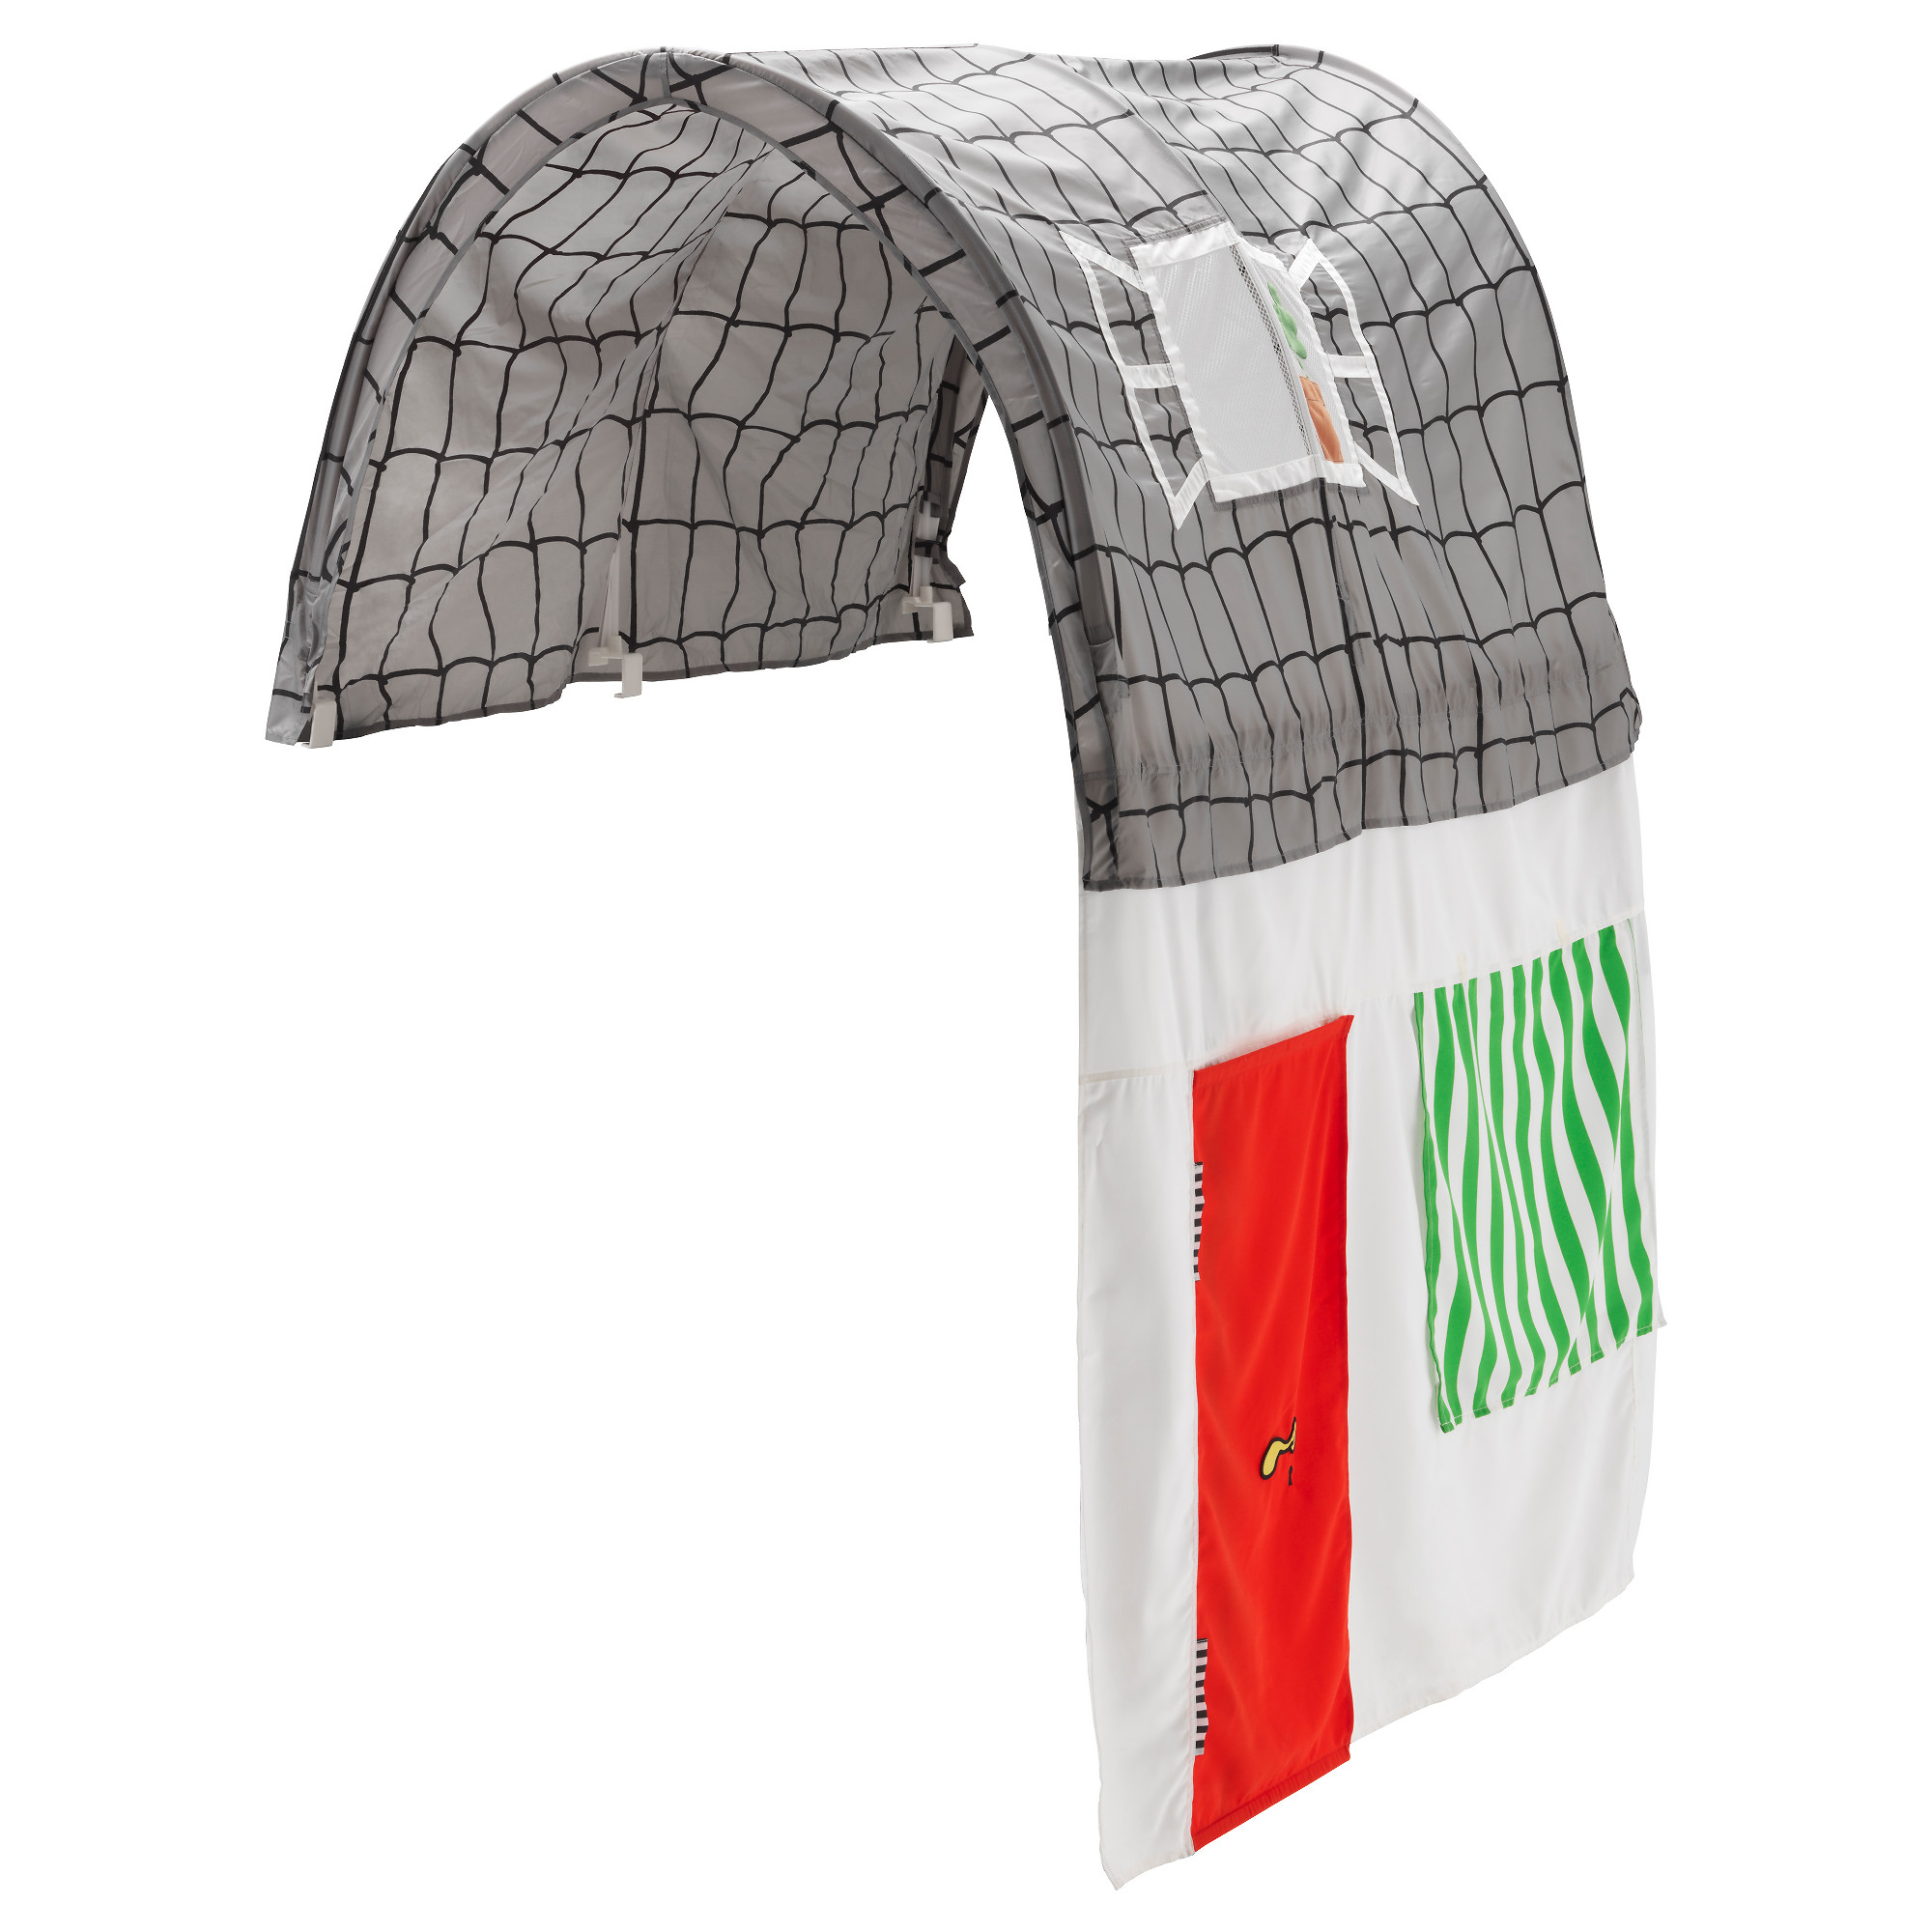 All Departments  sc 1 st  Ikea & KURA Bed tent with curtain - IKEA